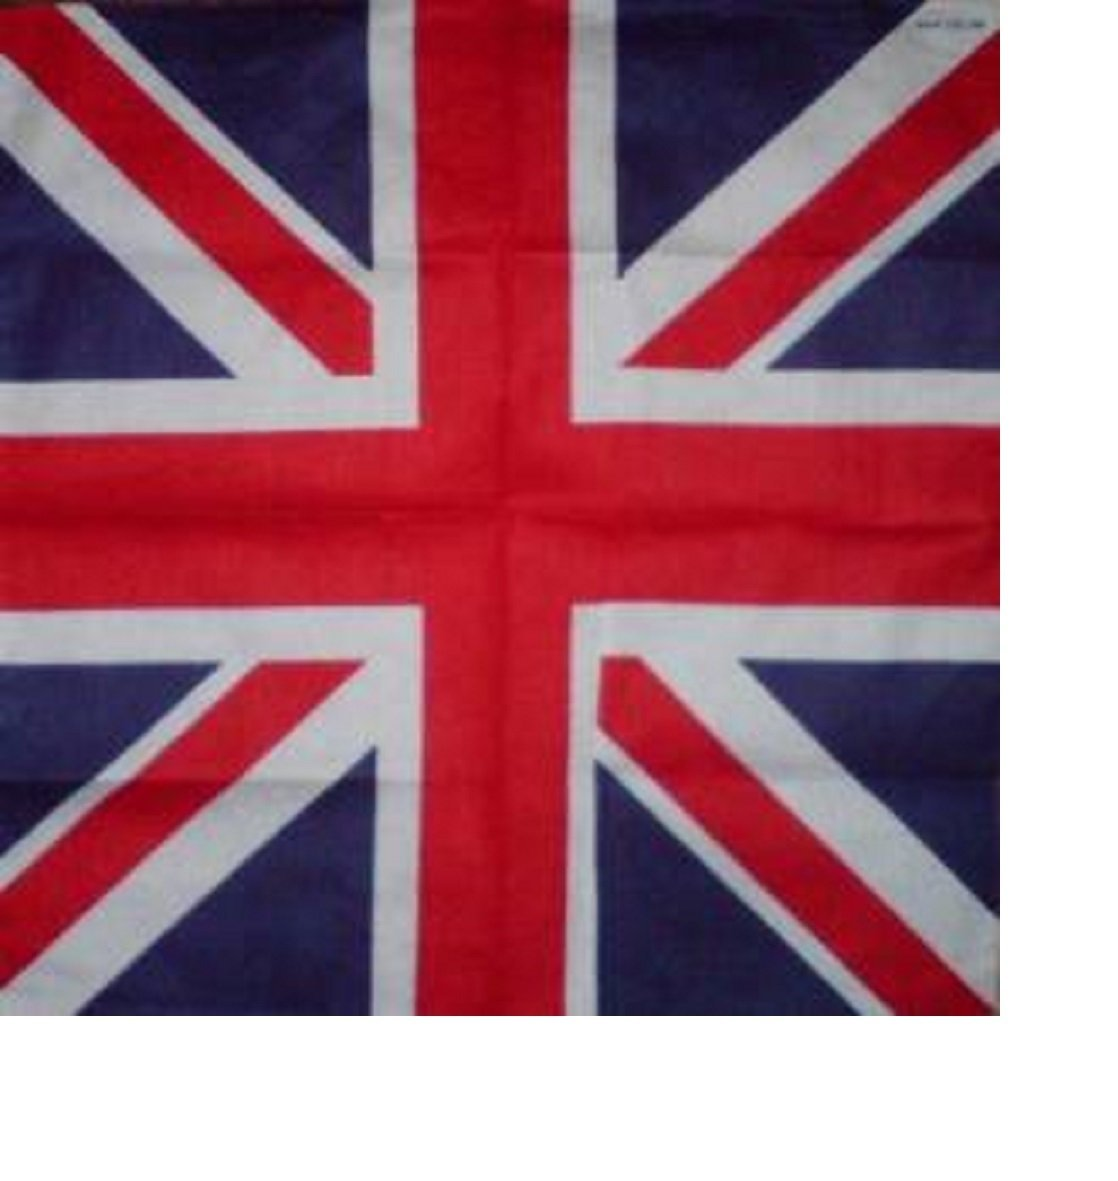 union jack bandana british flag cotton britain head neck scarf